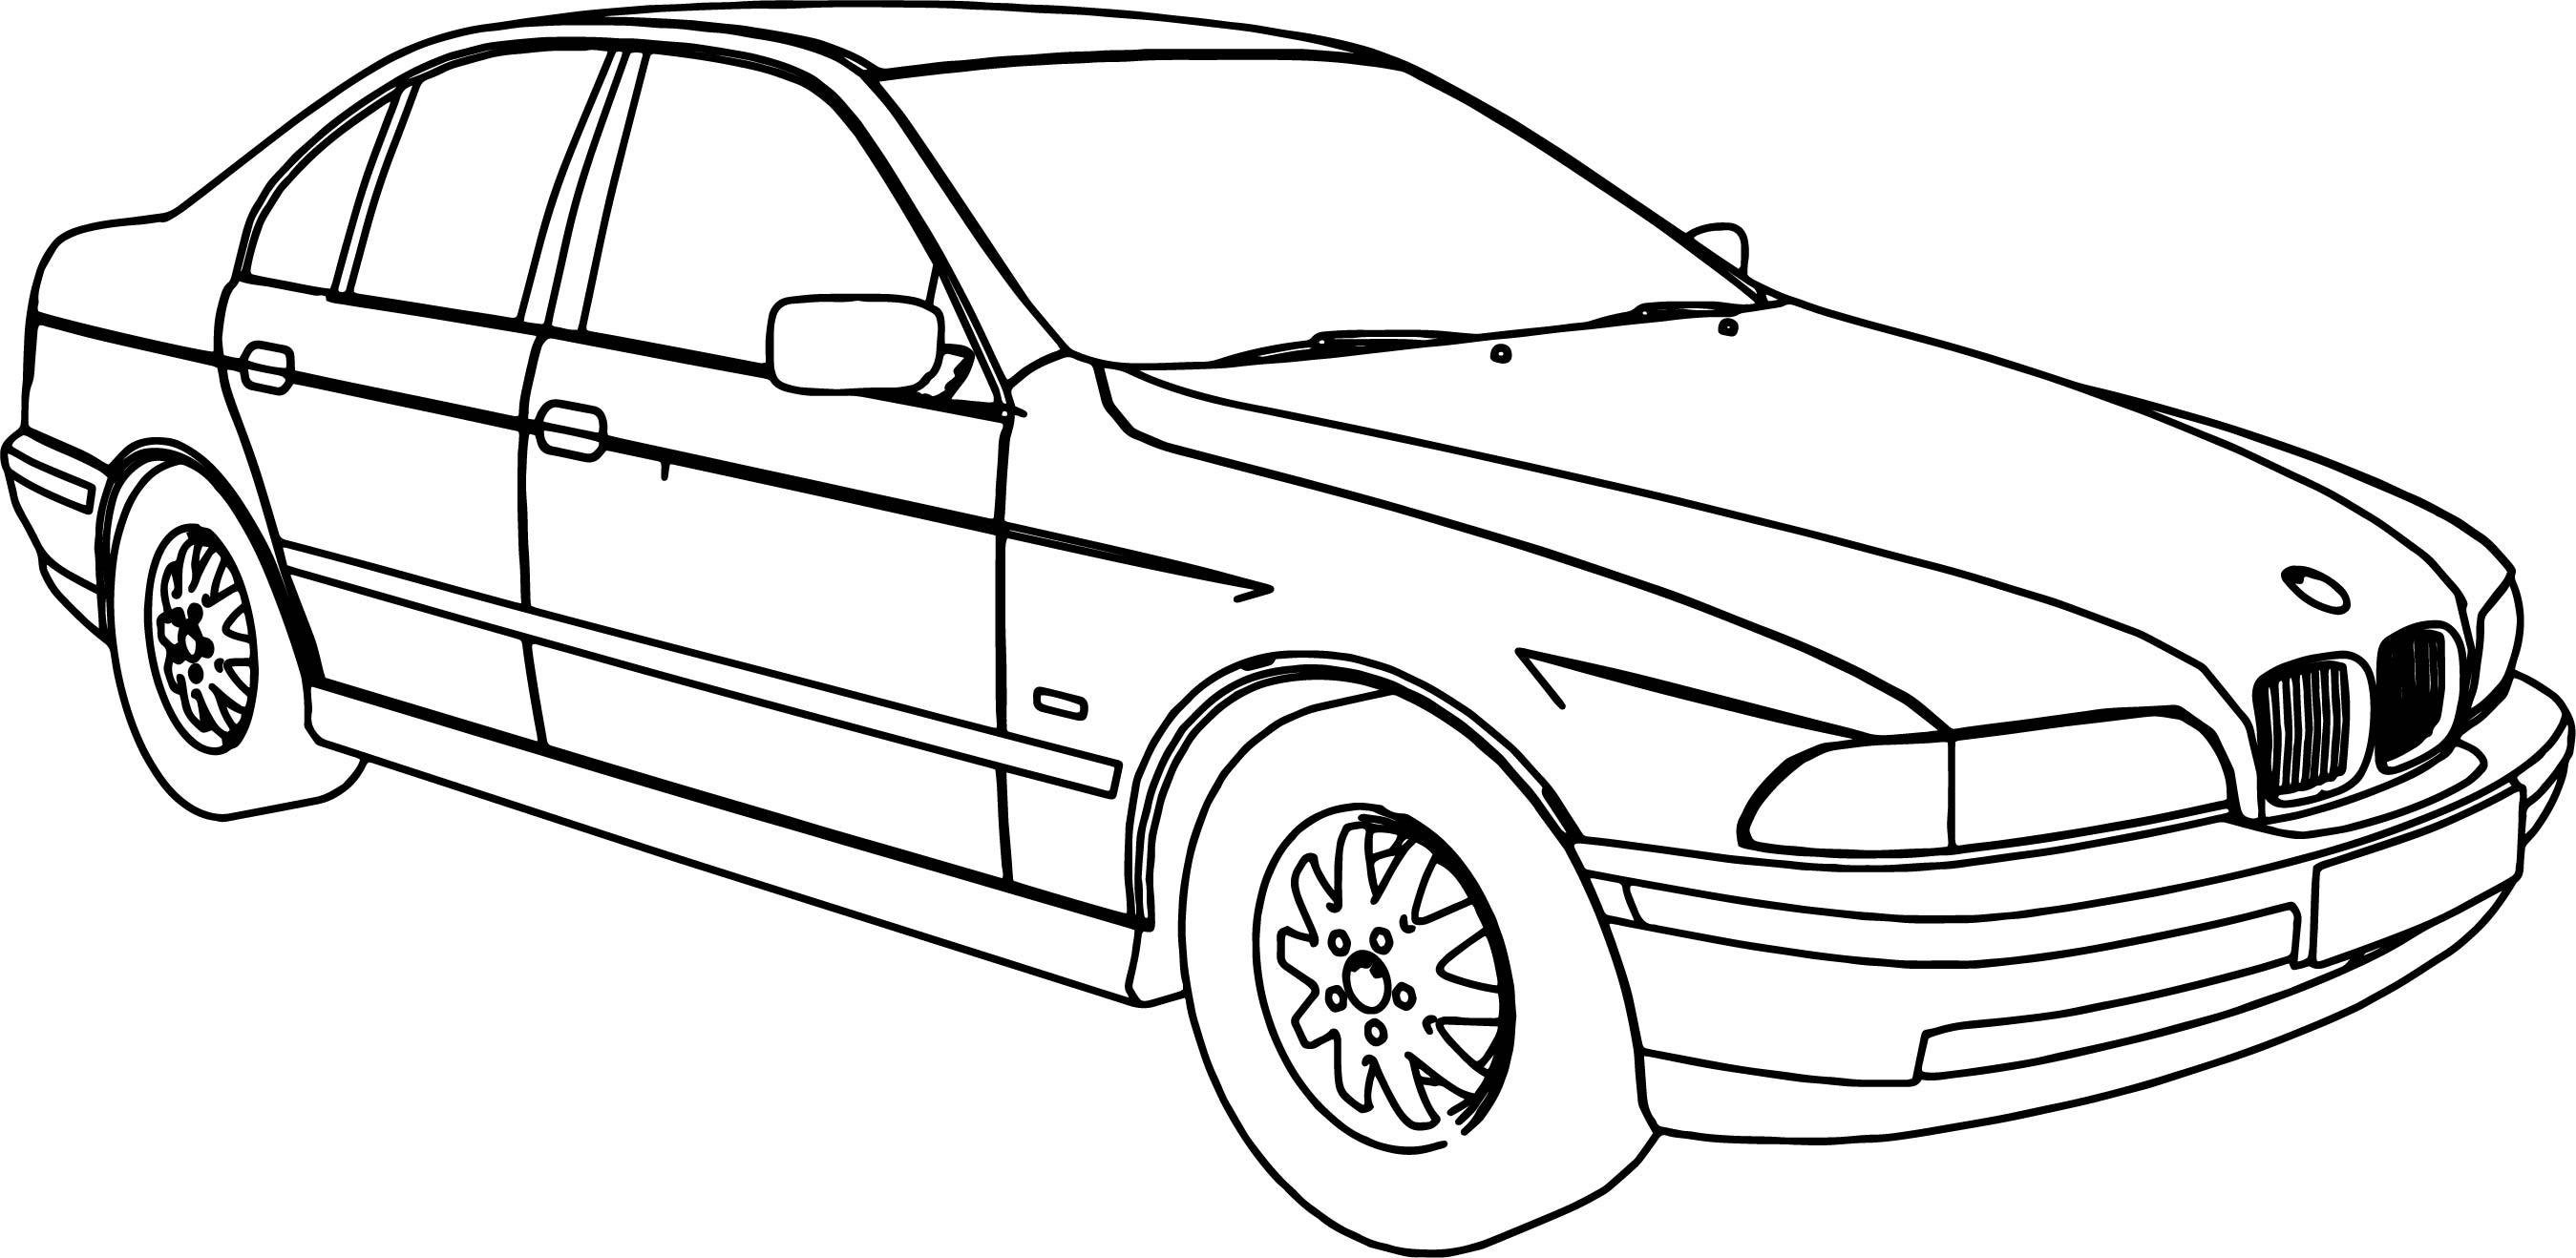 Latest Bmw 540 Model Car Coloring Page Wecoloringpage Com Free Download